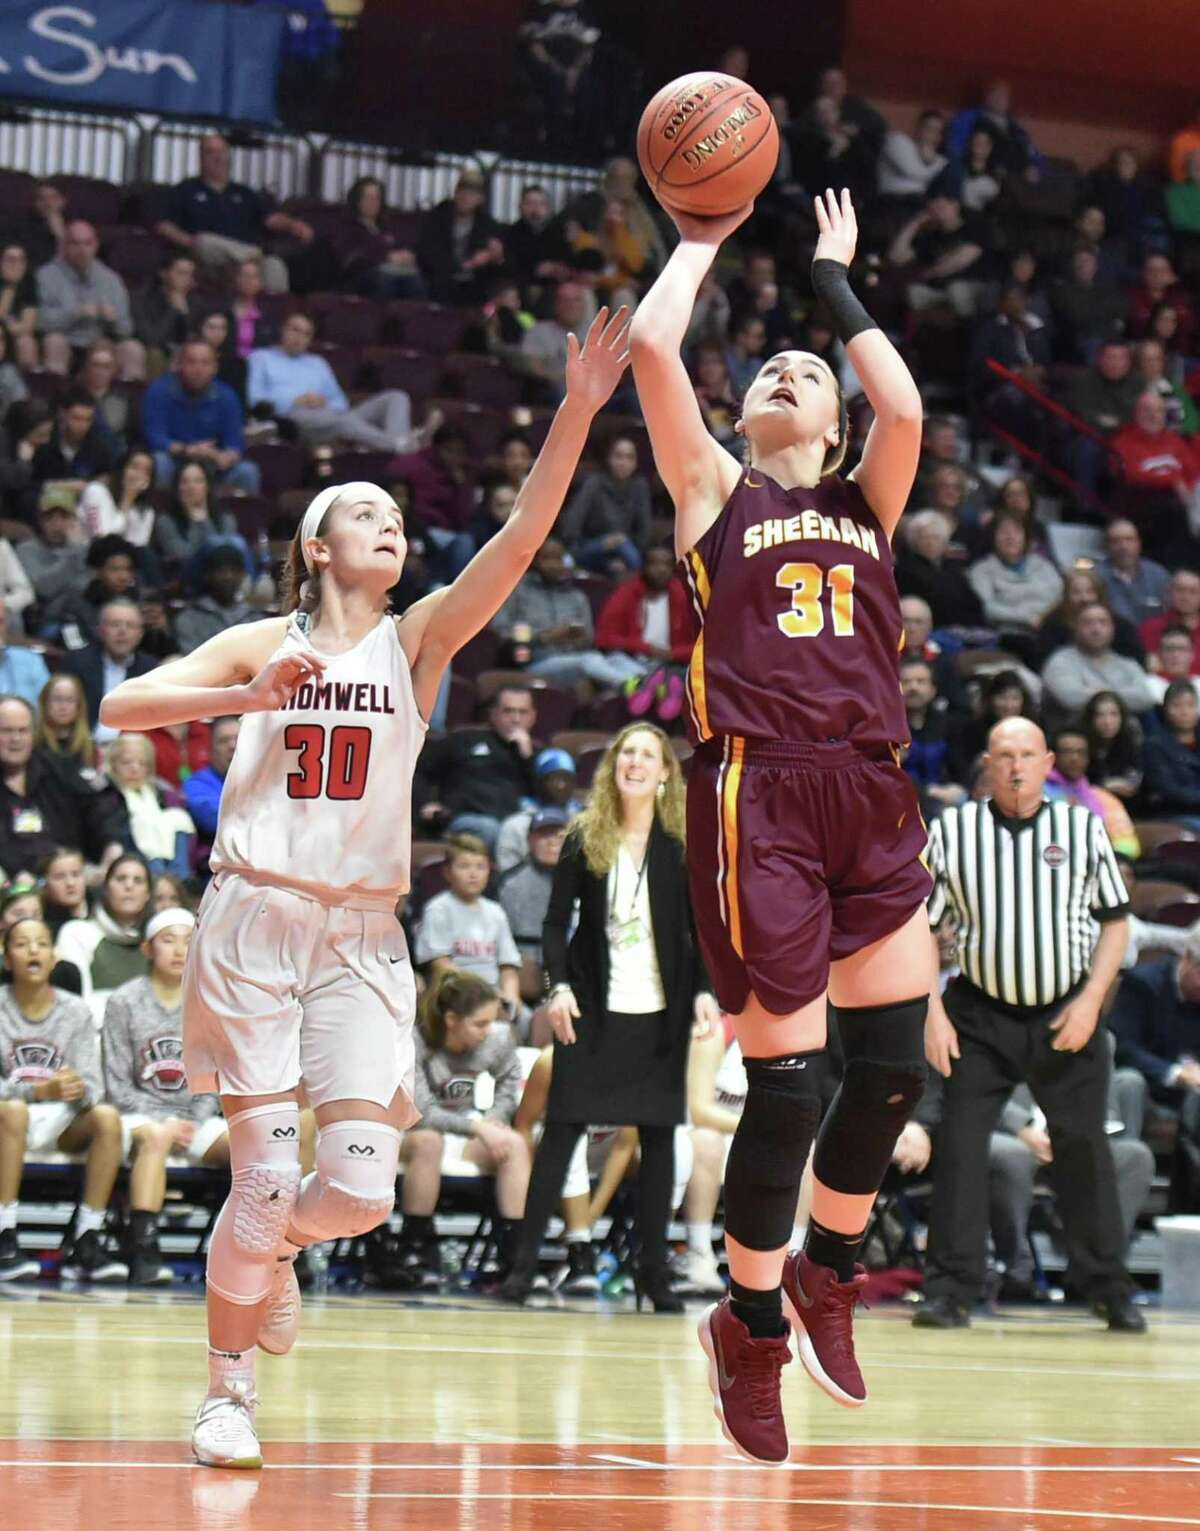 Uncasville, Connecticut- Sunday, March 17, 2019: Cromwell H.S. vs. Sheehan H.S. of Wallingford during the second quarter of the CIAC 2019 State Girls Basketball Tournament Class M championship final Sunday afternoon at Mohegan Sun in Uncasville.